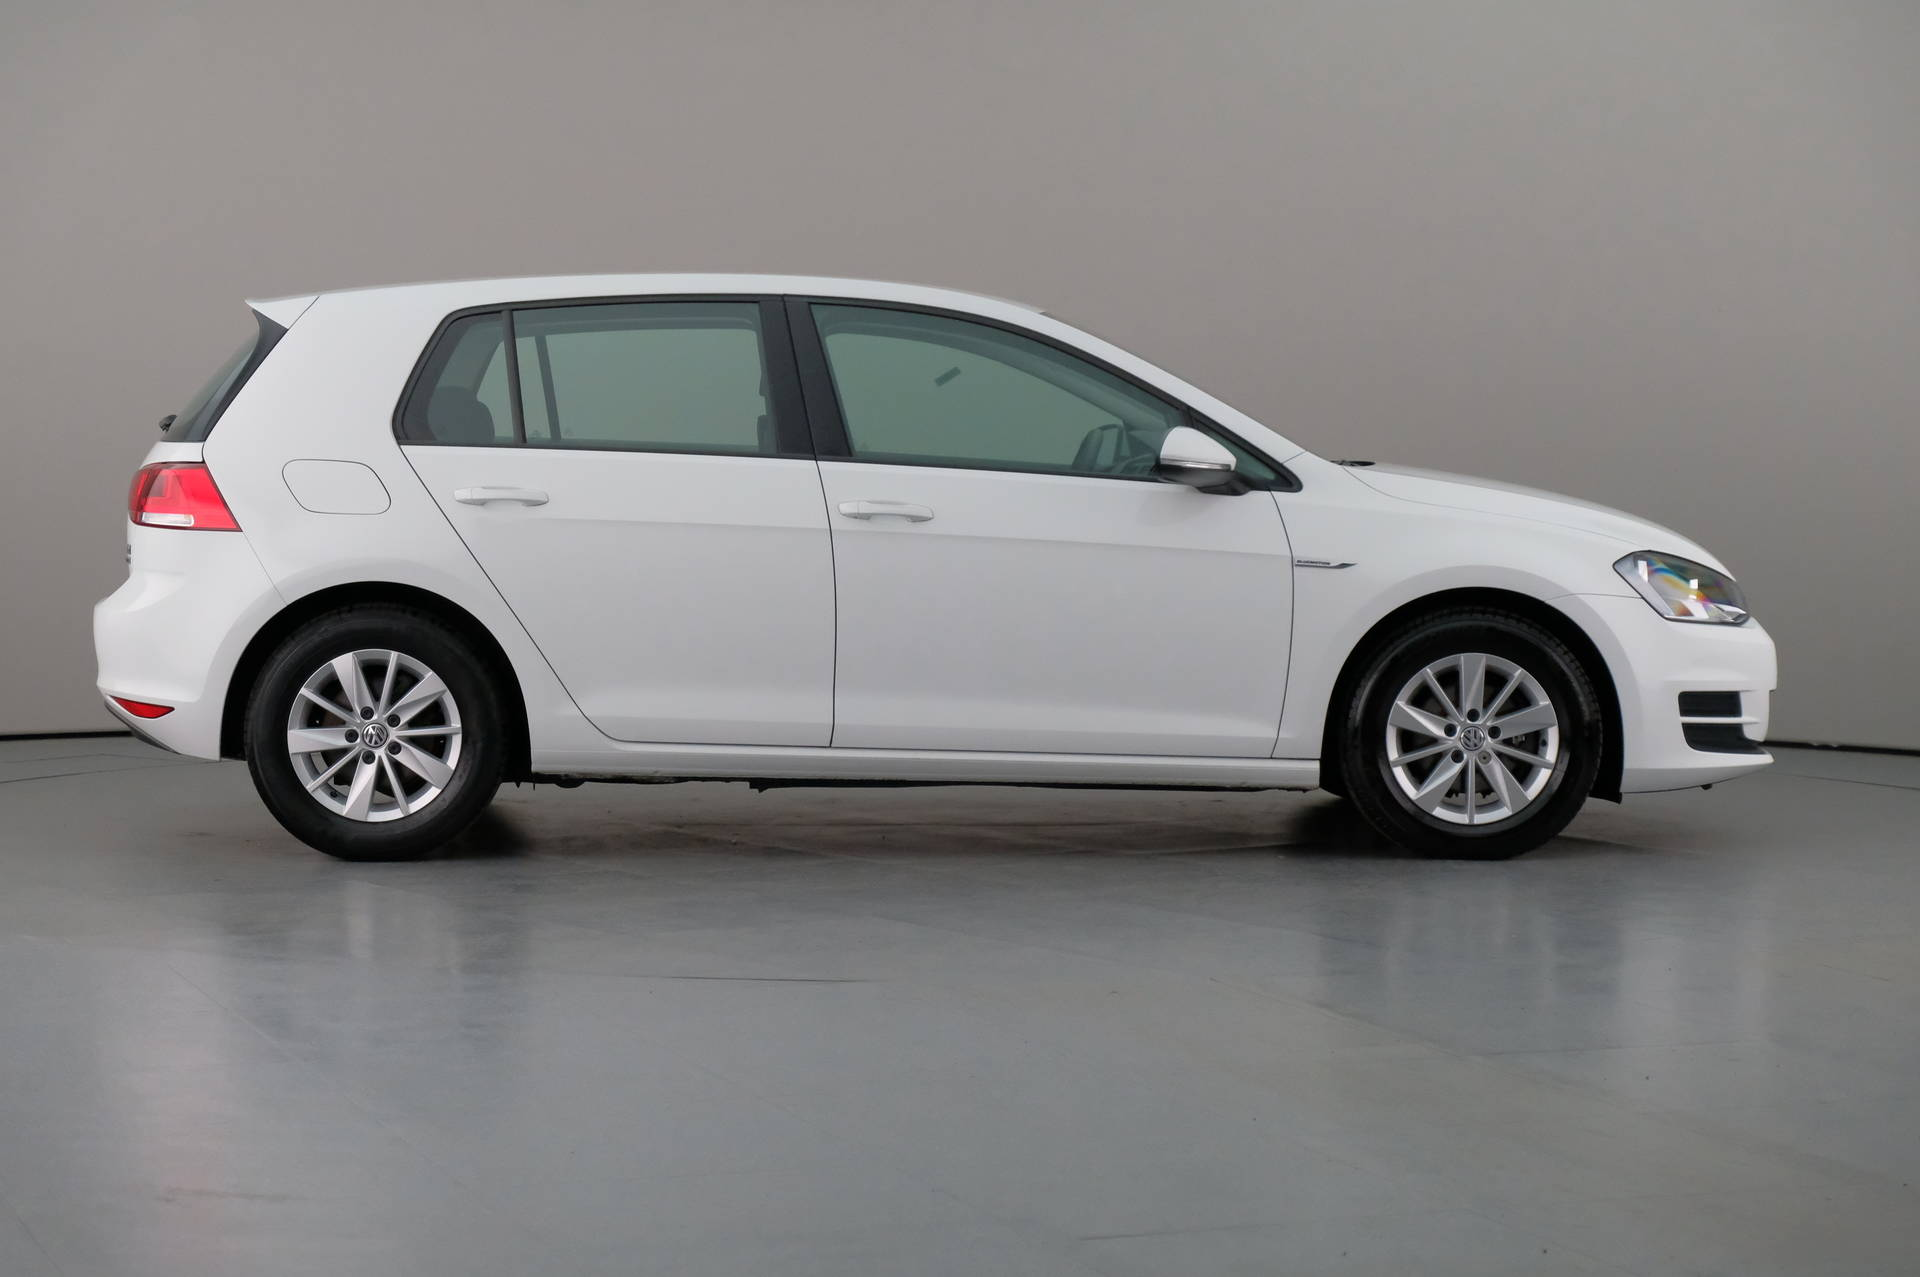 Volkswagen Golf 1.6TDi BLUEMOTION 5DR, 360-image31